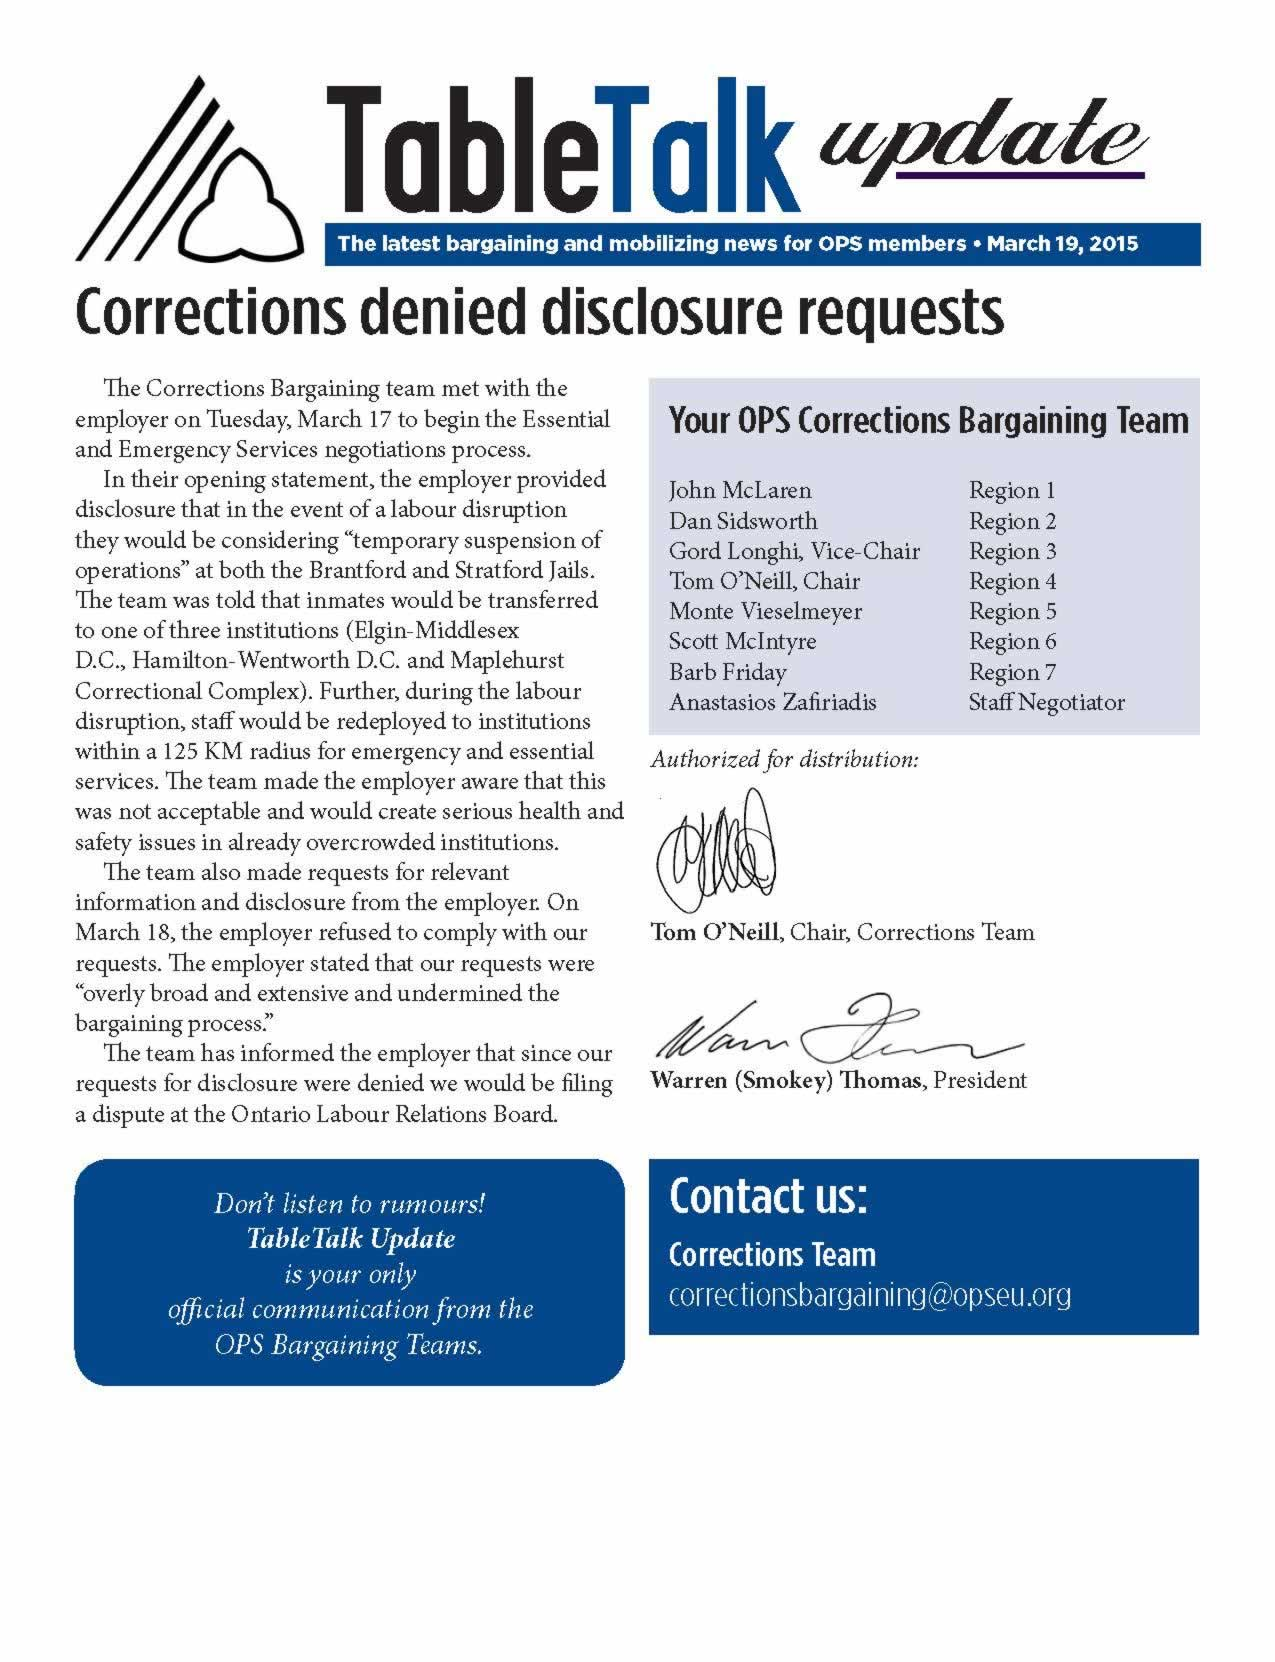 Table Talk Update: Corrections denied disclosure requests